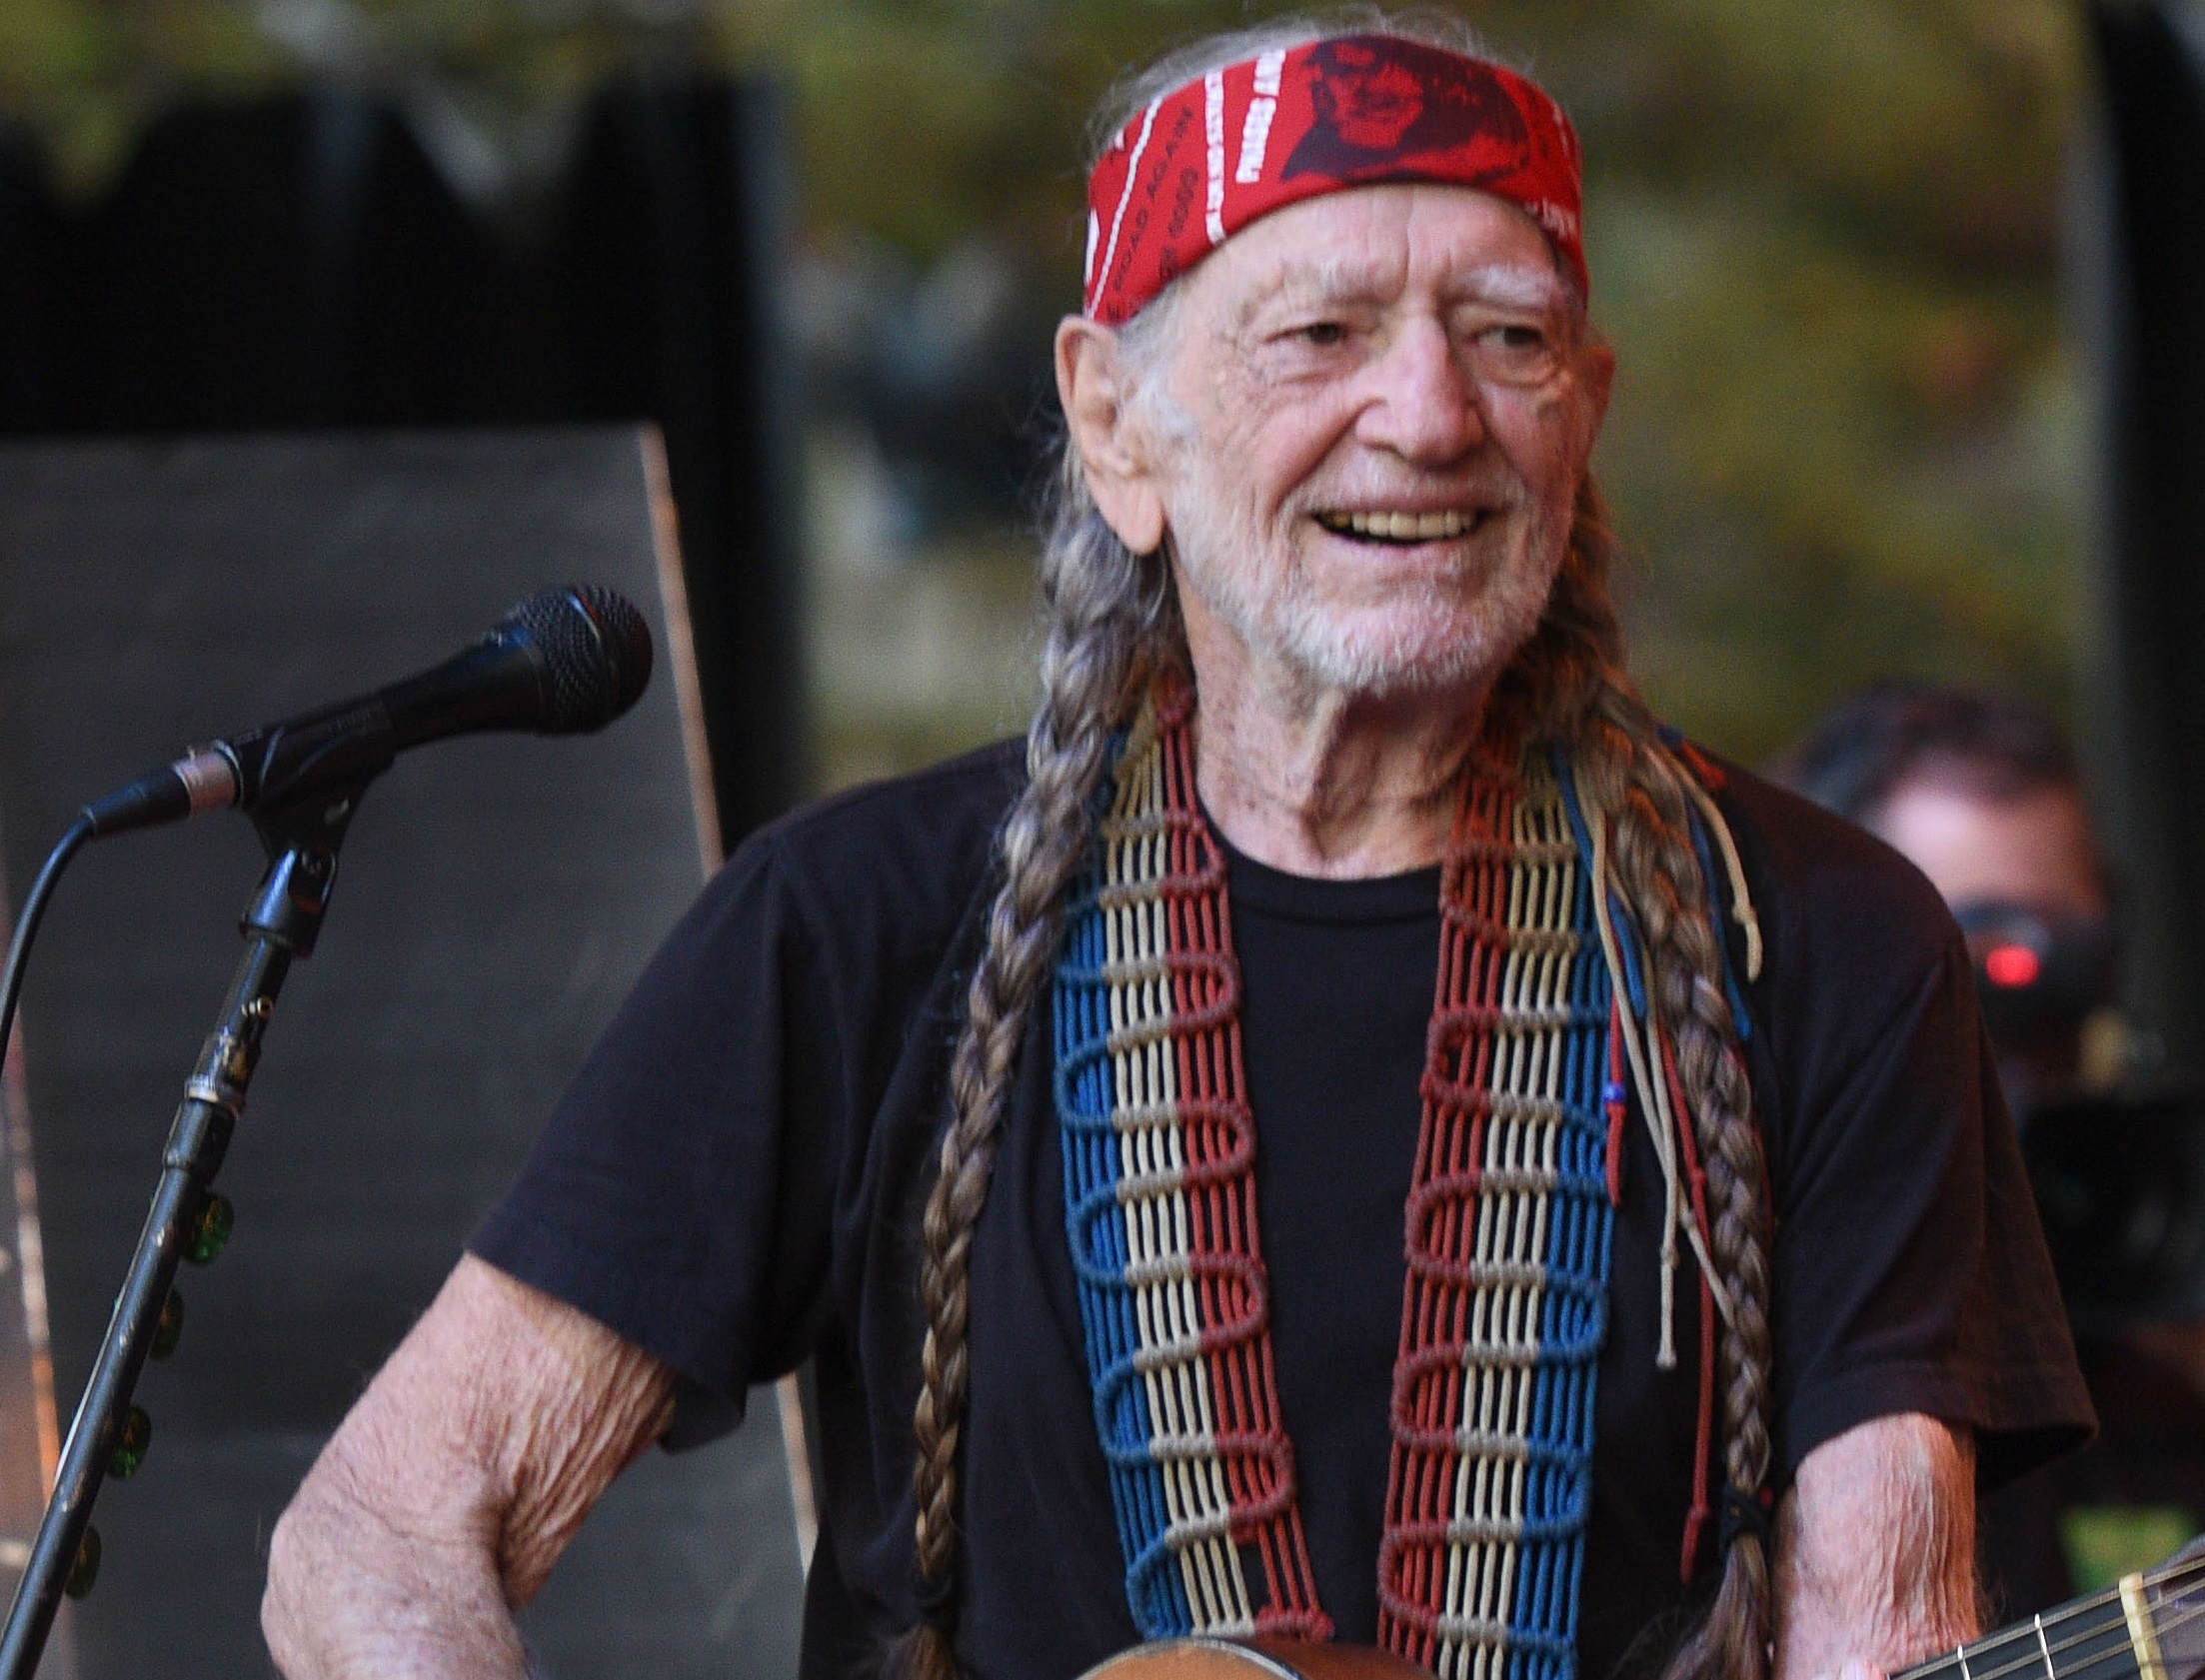 Willie Nelson Forced To Cancel Several Shows Due To 'a Bad Cold or the Flu'